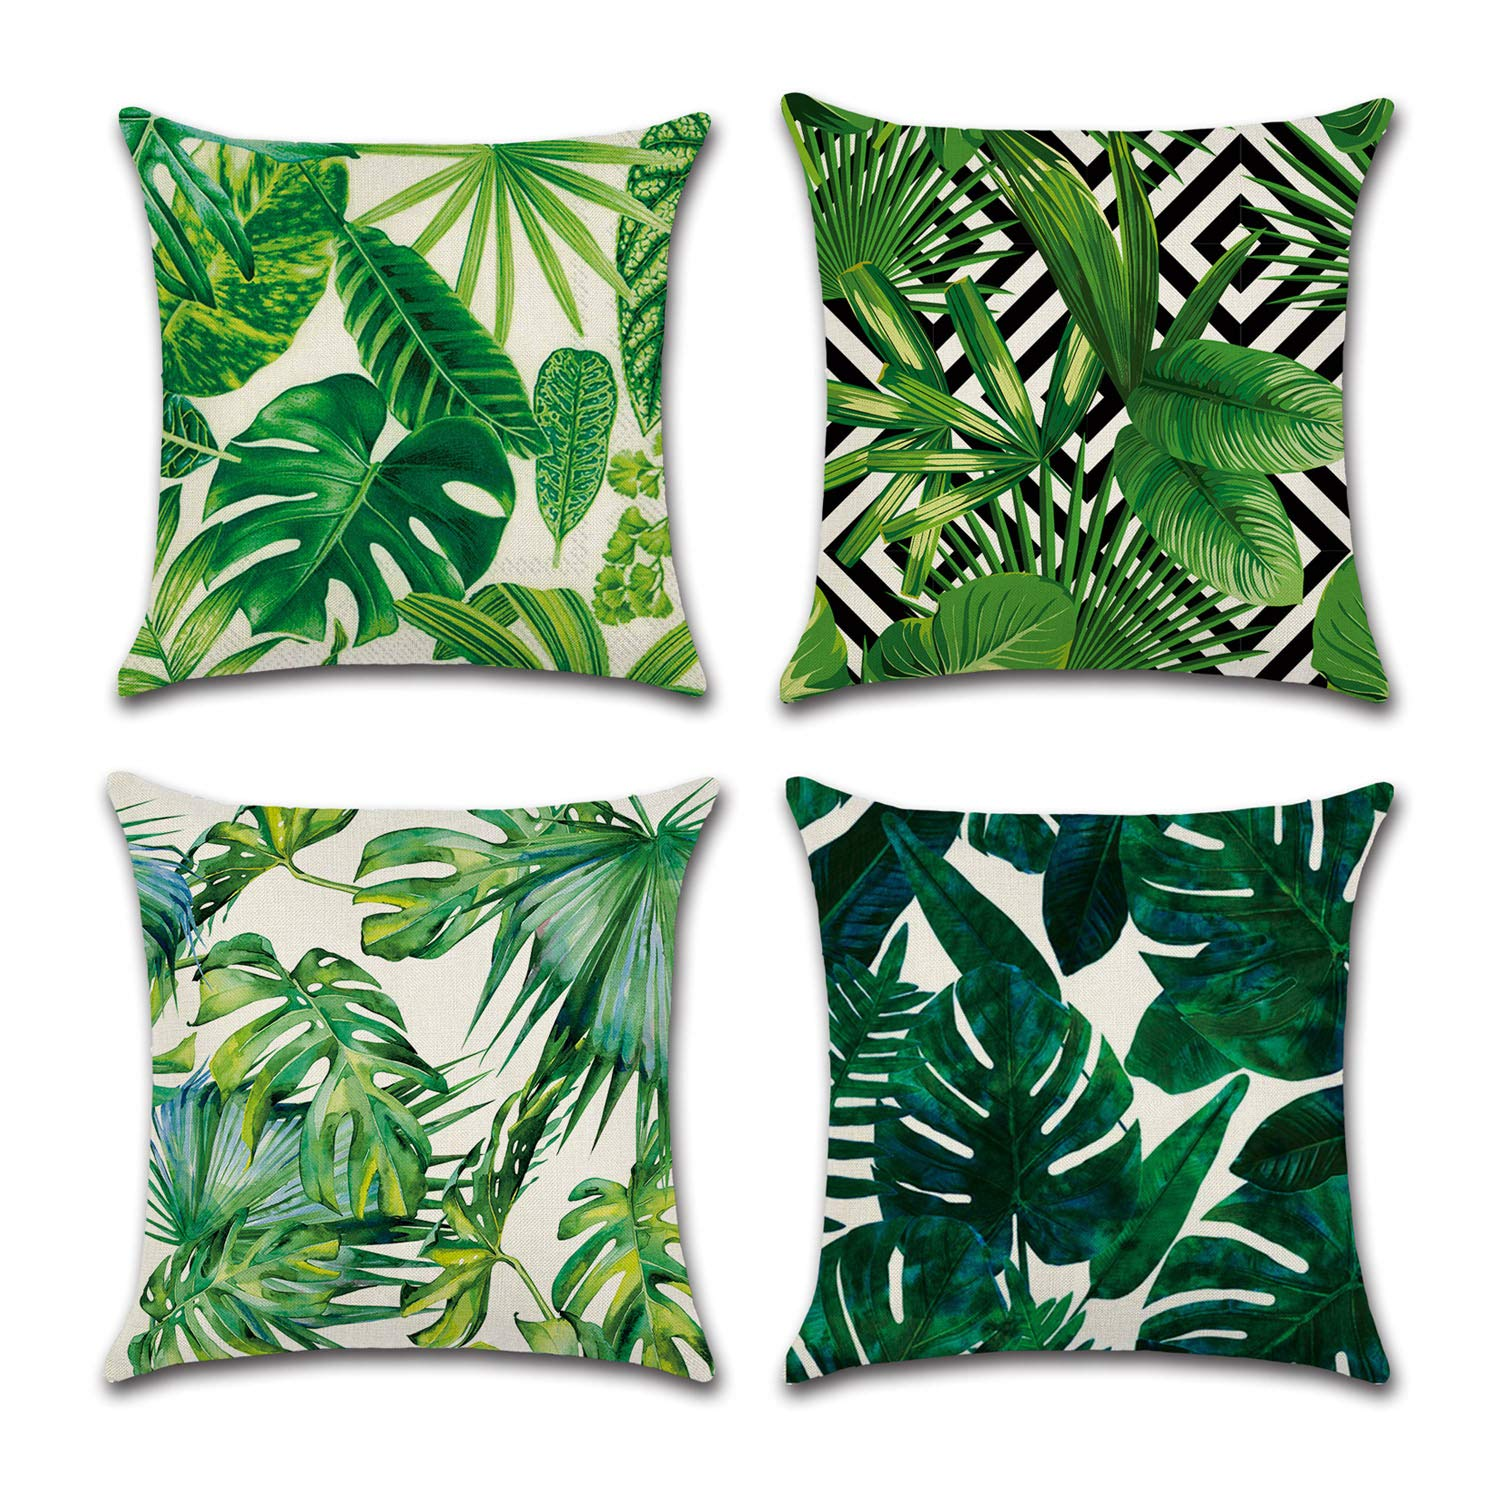 Buy Yoursee Tropical Leaves Party Decorations Set Of 4 Decorative Throw Pillow Covers 18 X 18 With Tropical Palm Monstera Leaves Print For Summer Green Decor For Sofa Couch And Patio Online